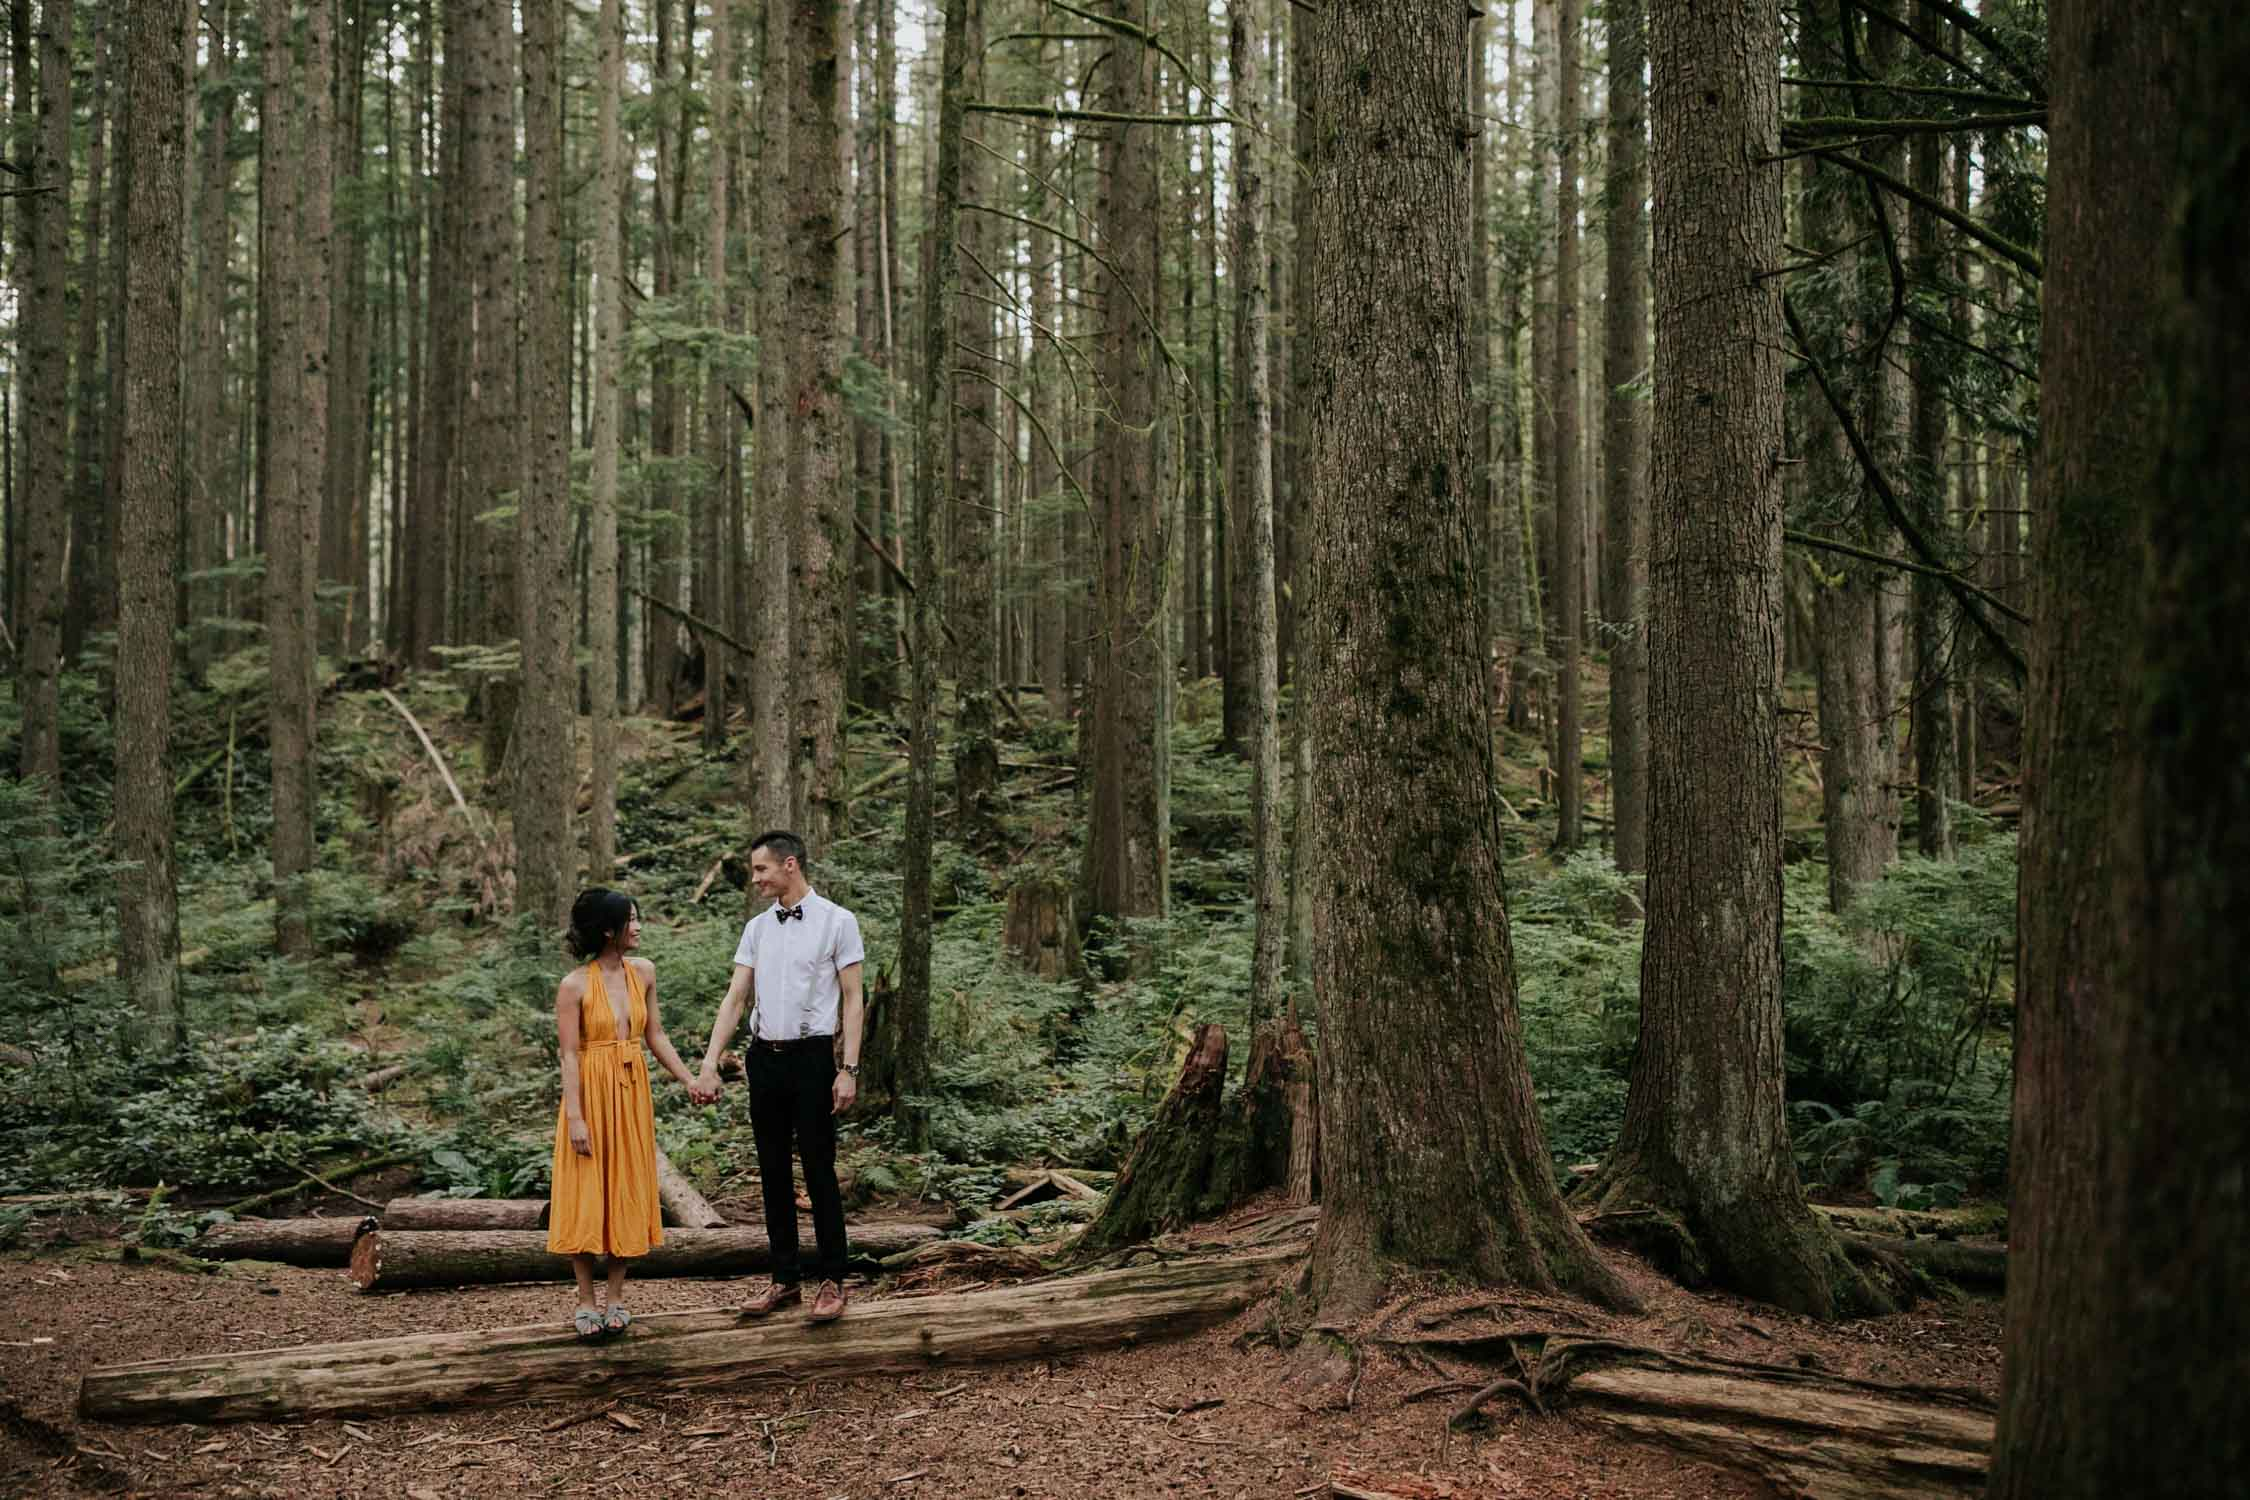 Couple stand on a log surrounded by forest in Vancouver, BC.